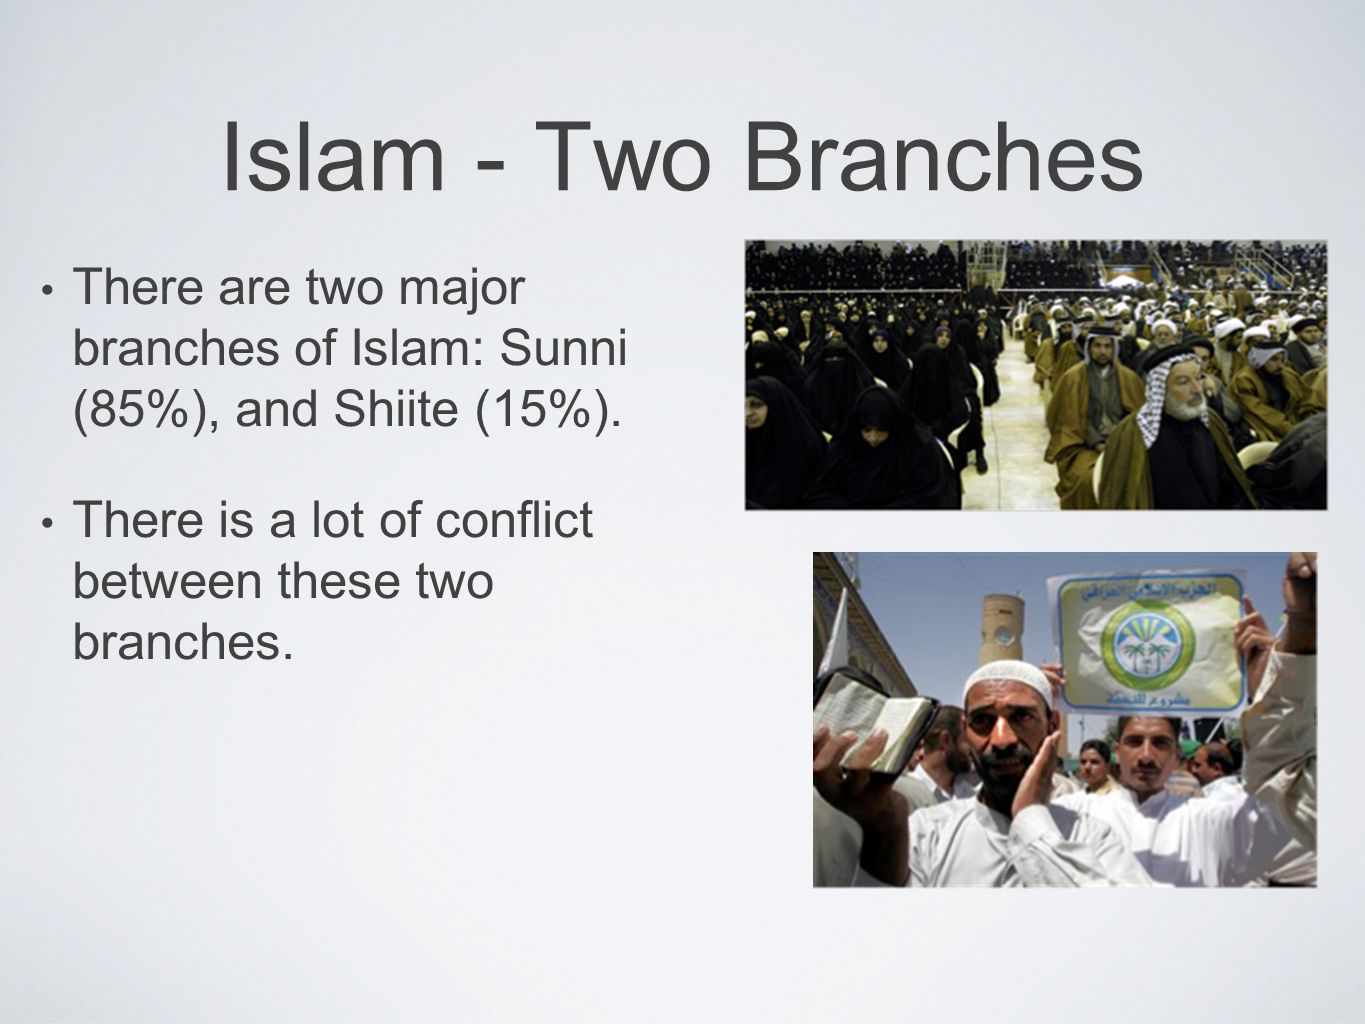 Islam - Two Branches There are two major branches of Islam: Sunni (85%), and Shiite (15%).